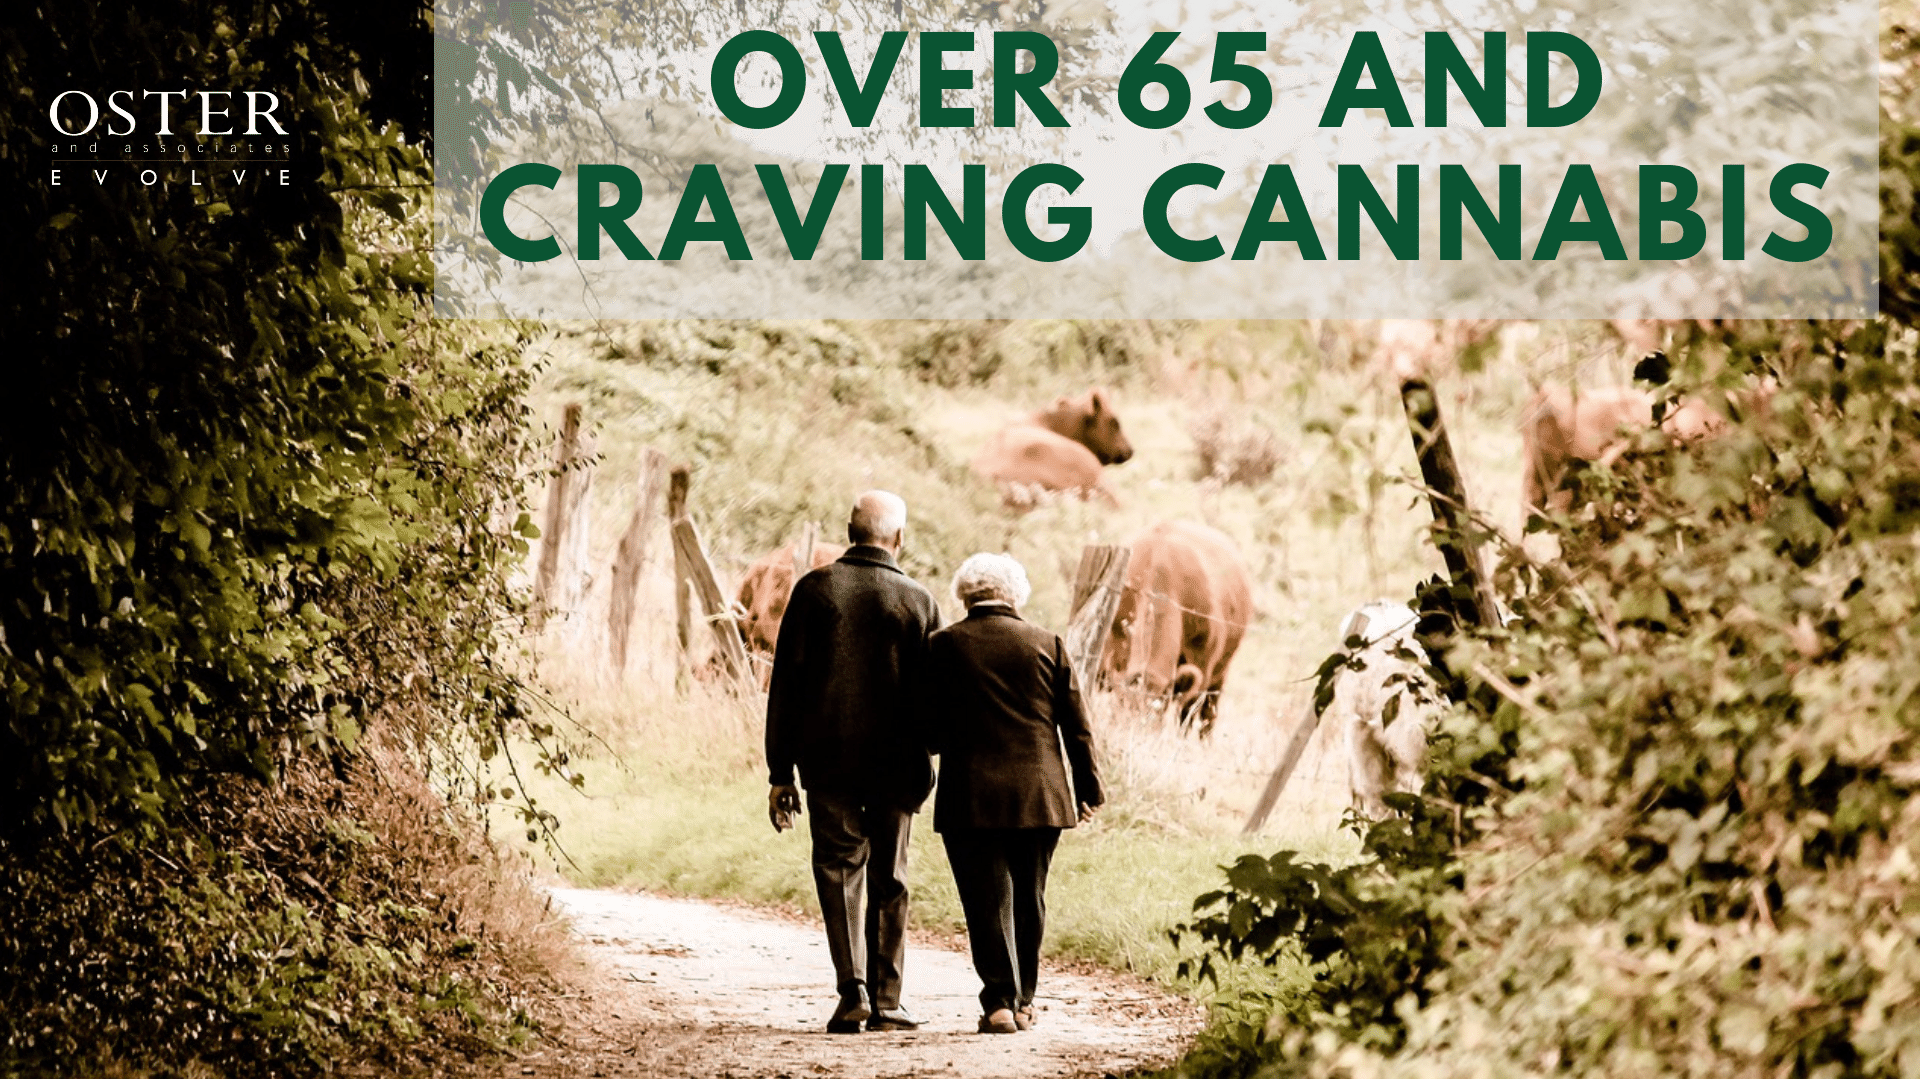 Over 65 and Craving Cannabis – A Look at a Huge Marketing Opportunity